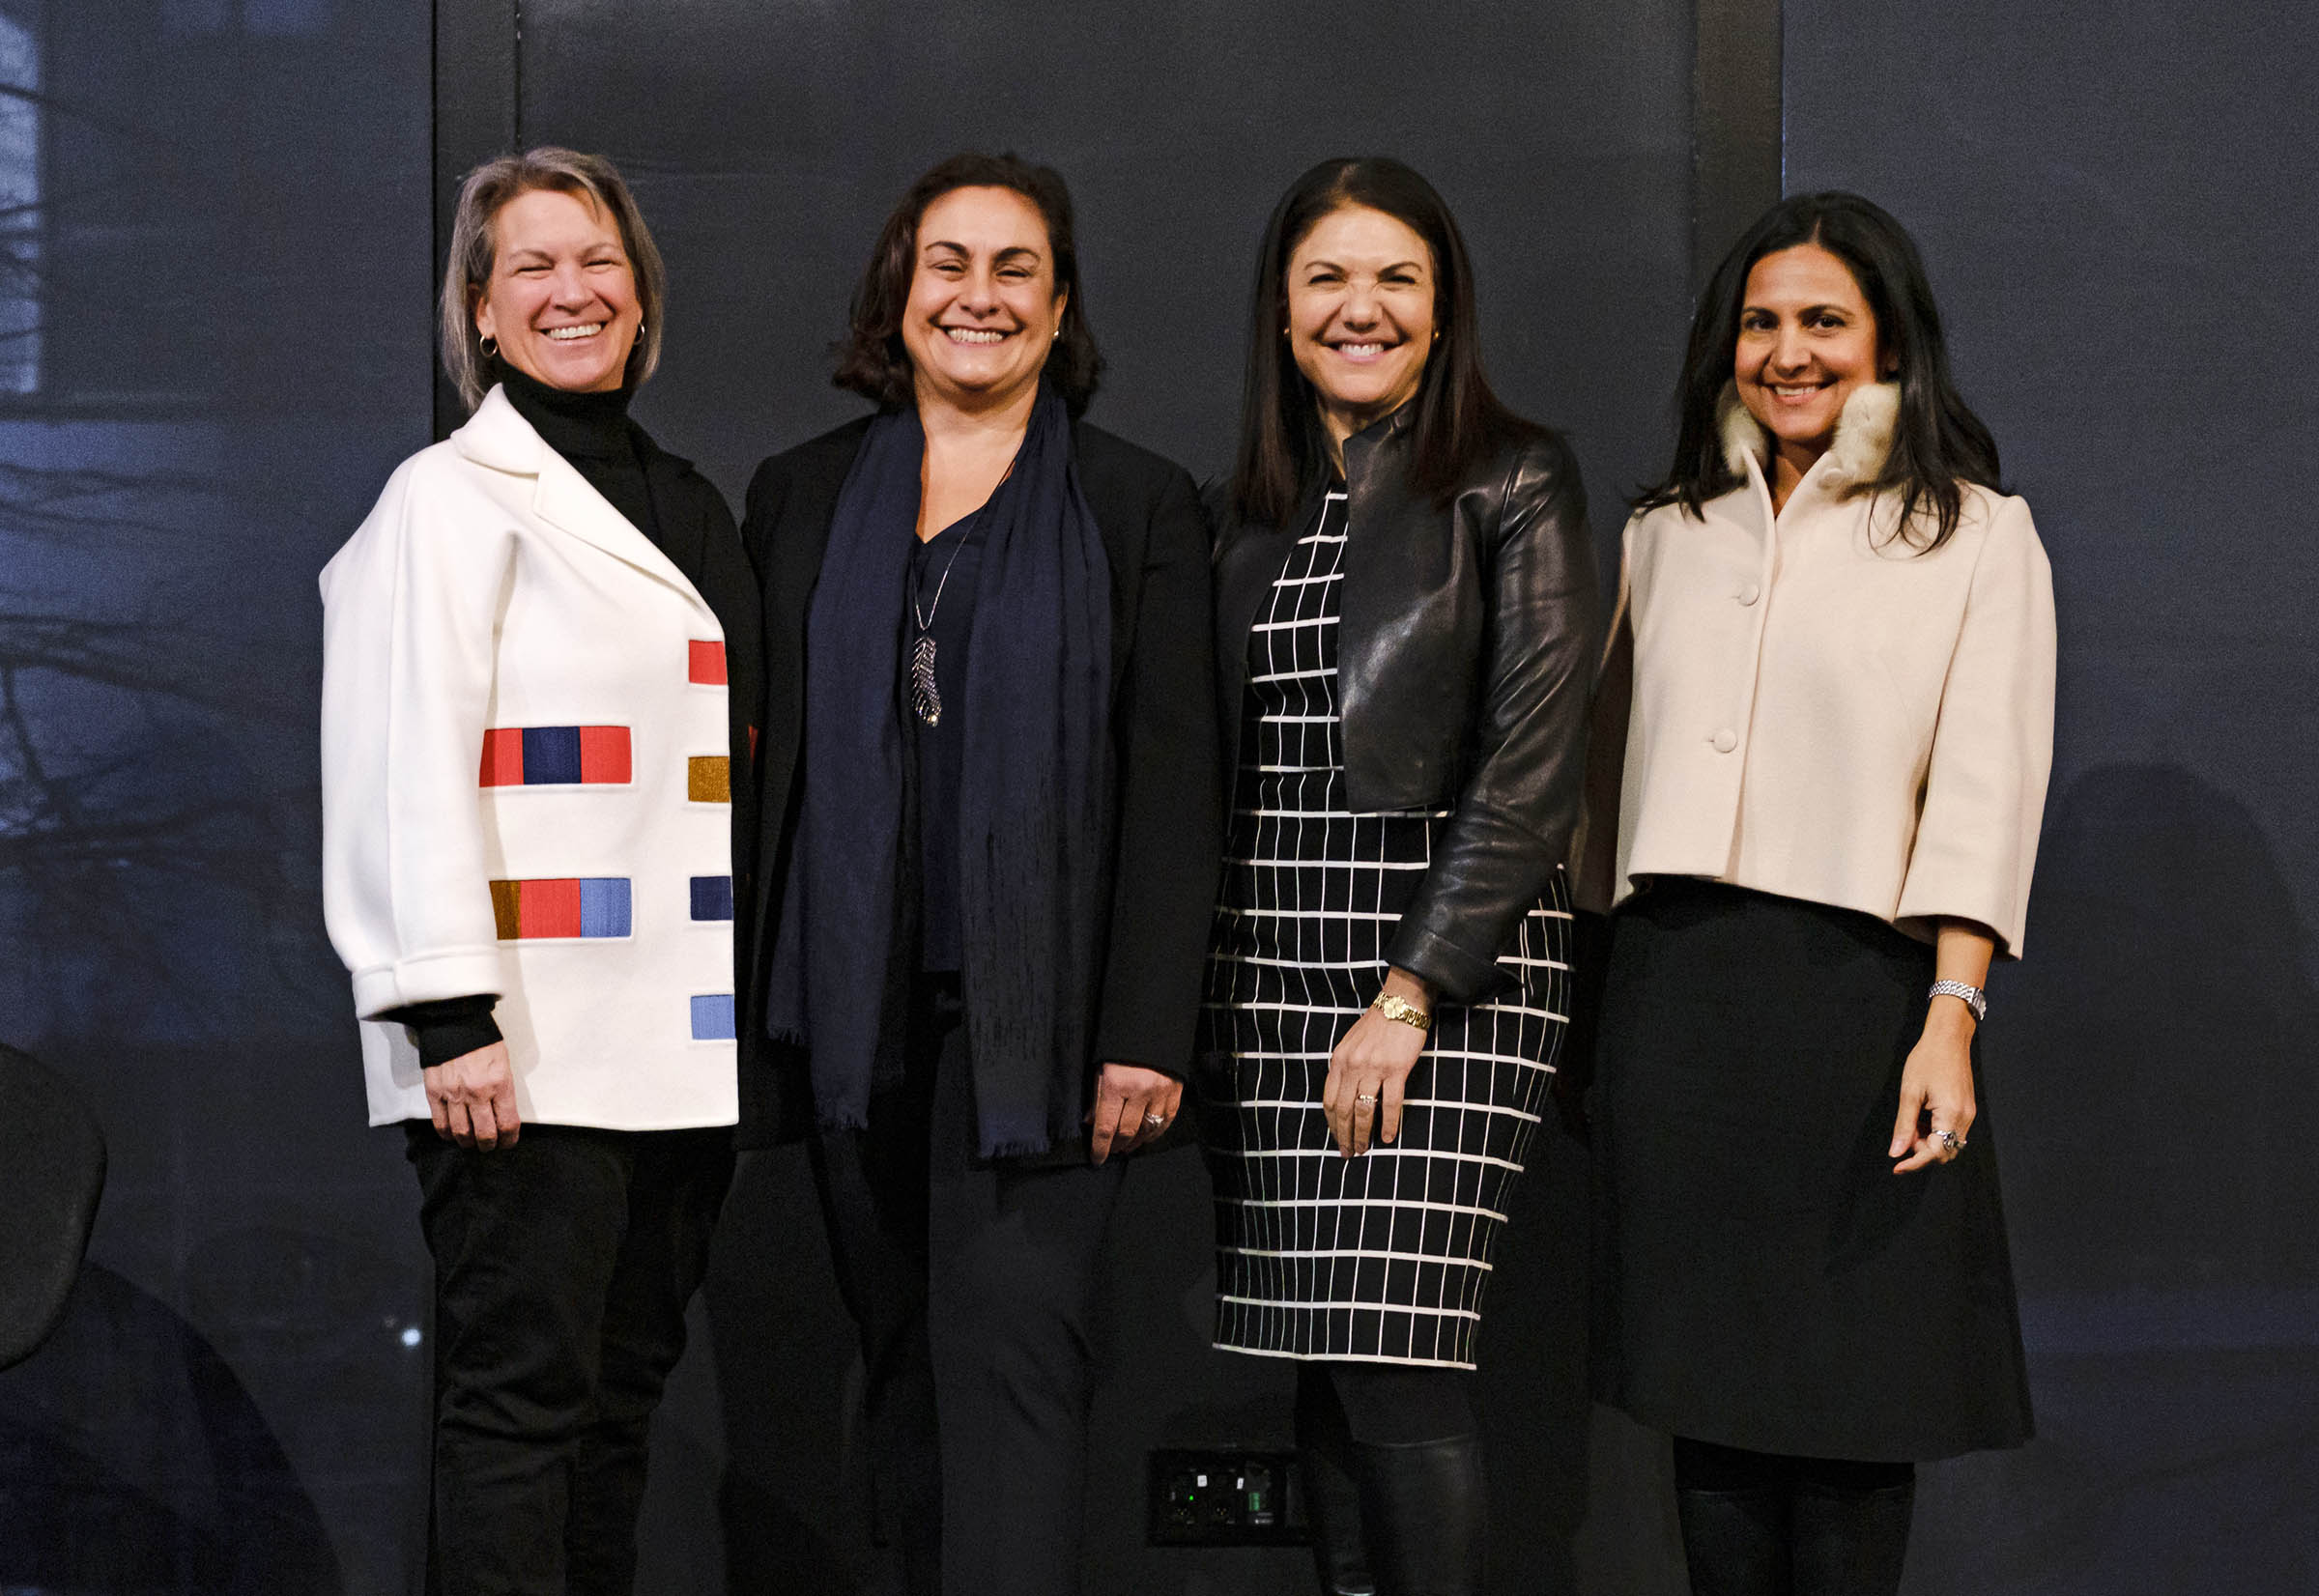 From left: Suni Harford, President of UBS Asset Management, Alexis Alexanian, independent producer and former president of New York Women in Film & Television, Mary Ellen Iskenderian, CEO of Women's World Banking; and Carineh Martin, Co-Founder of RAD